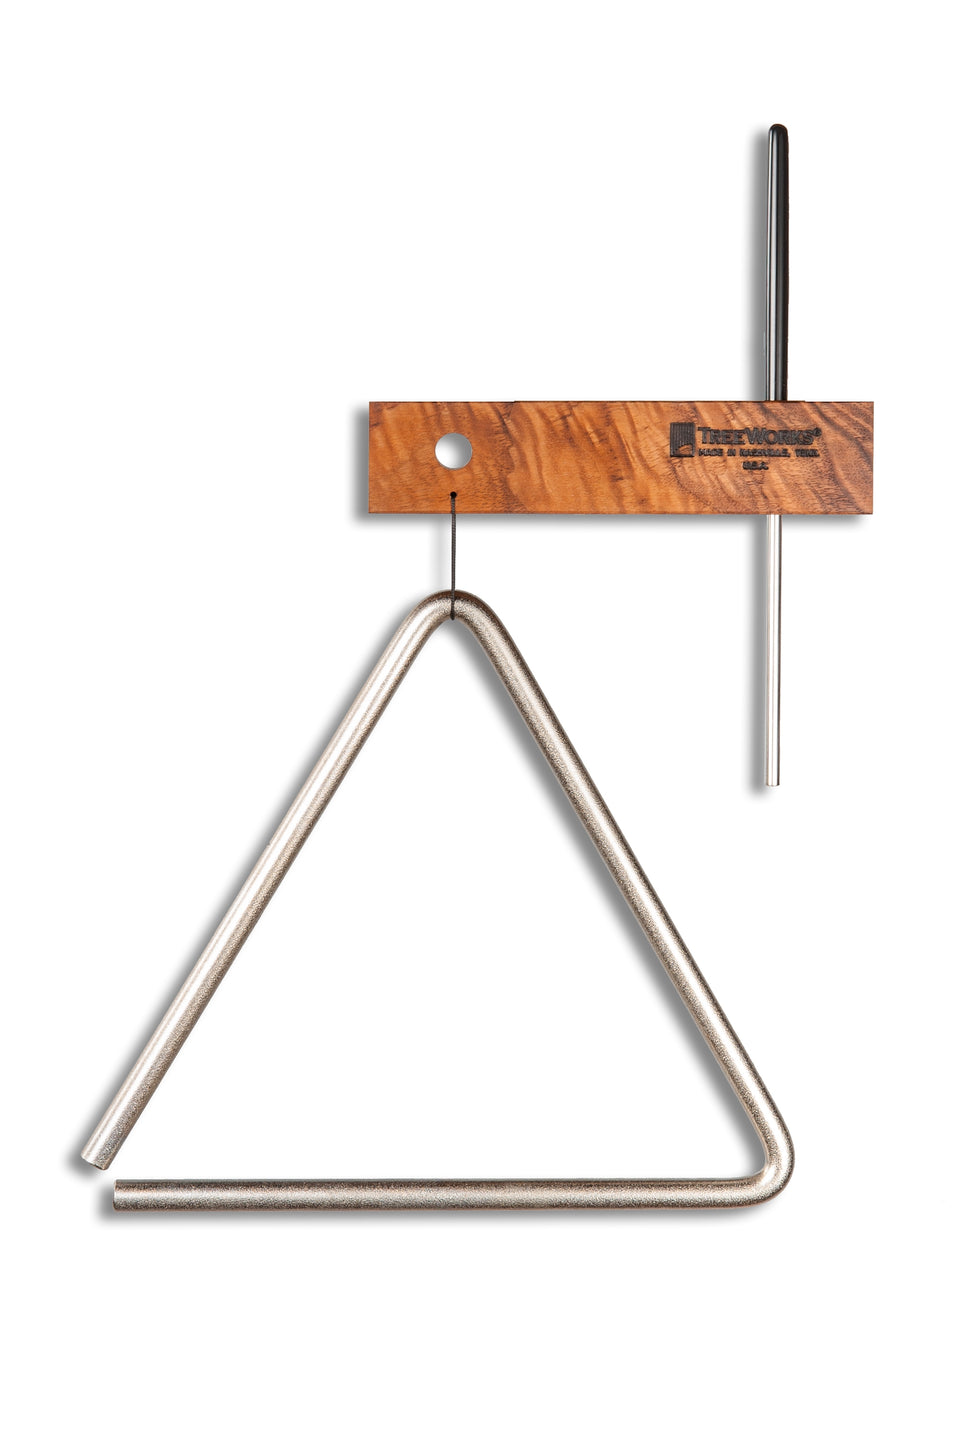 Treeworks TRE-HS08 8-Inch Triangle W/ Beater/Striker & Holder